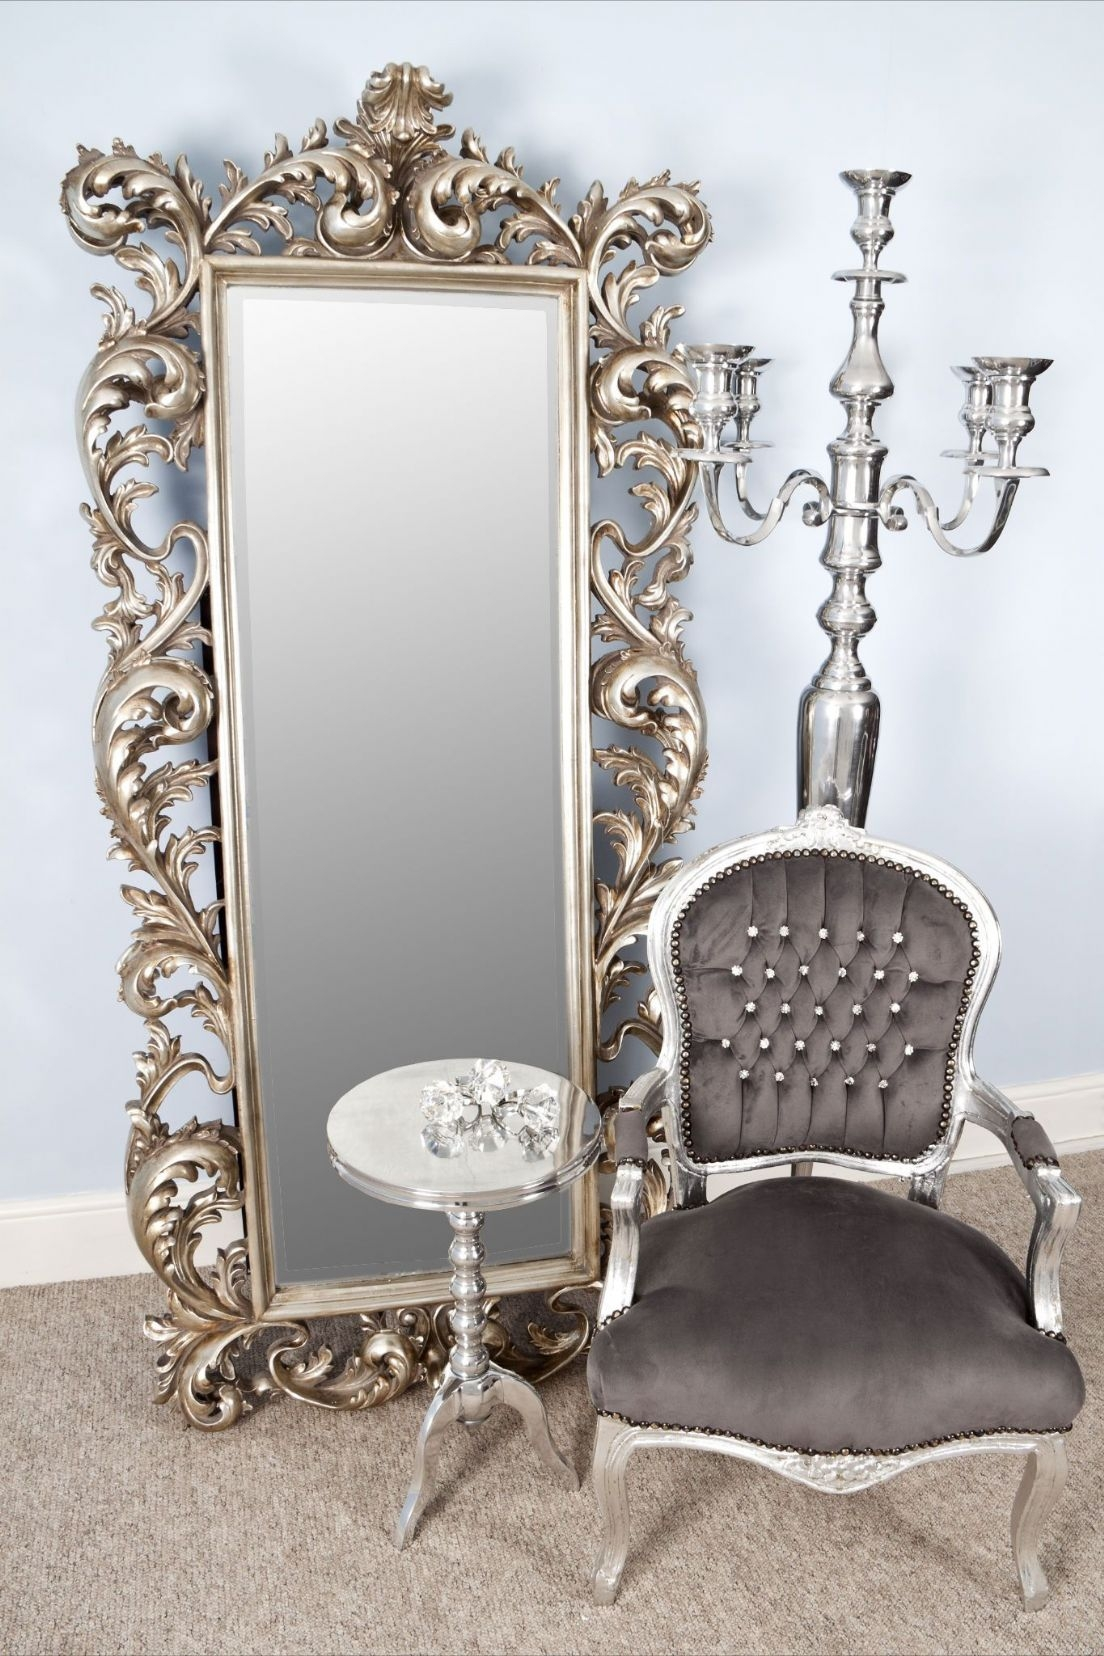 Nita Extra Large Silver Mirror 192 X 86 X 10 Cm Exclusive Mirrors Intended For Large Antique Silver Mirror (Image 11 of 15)